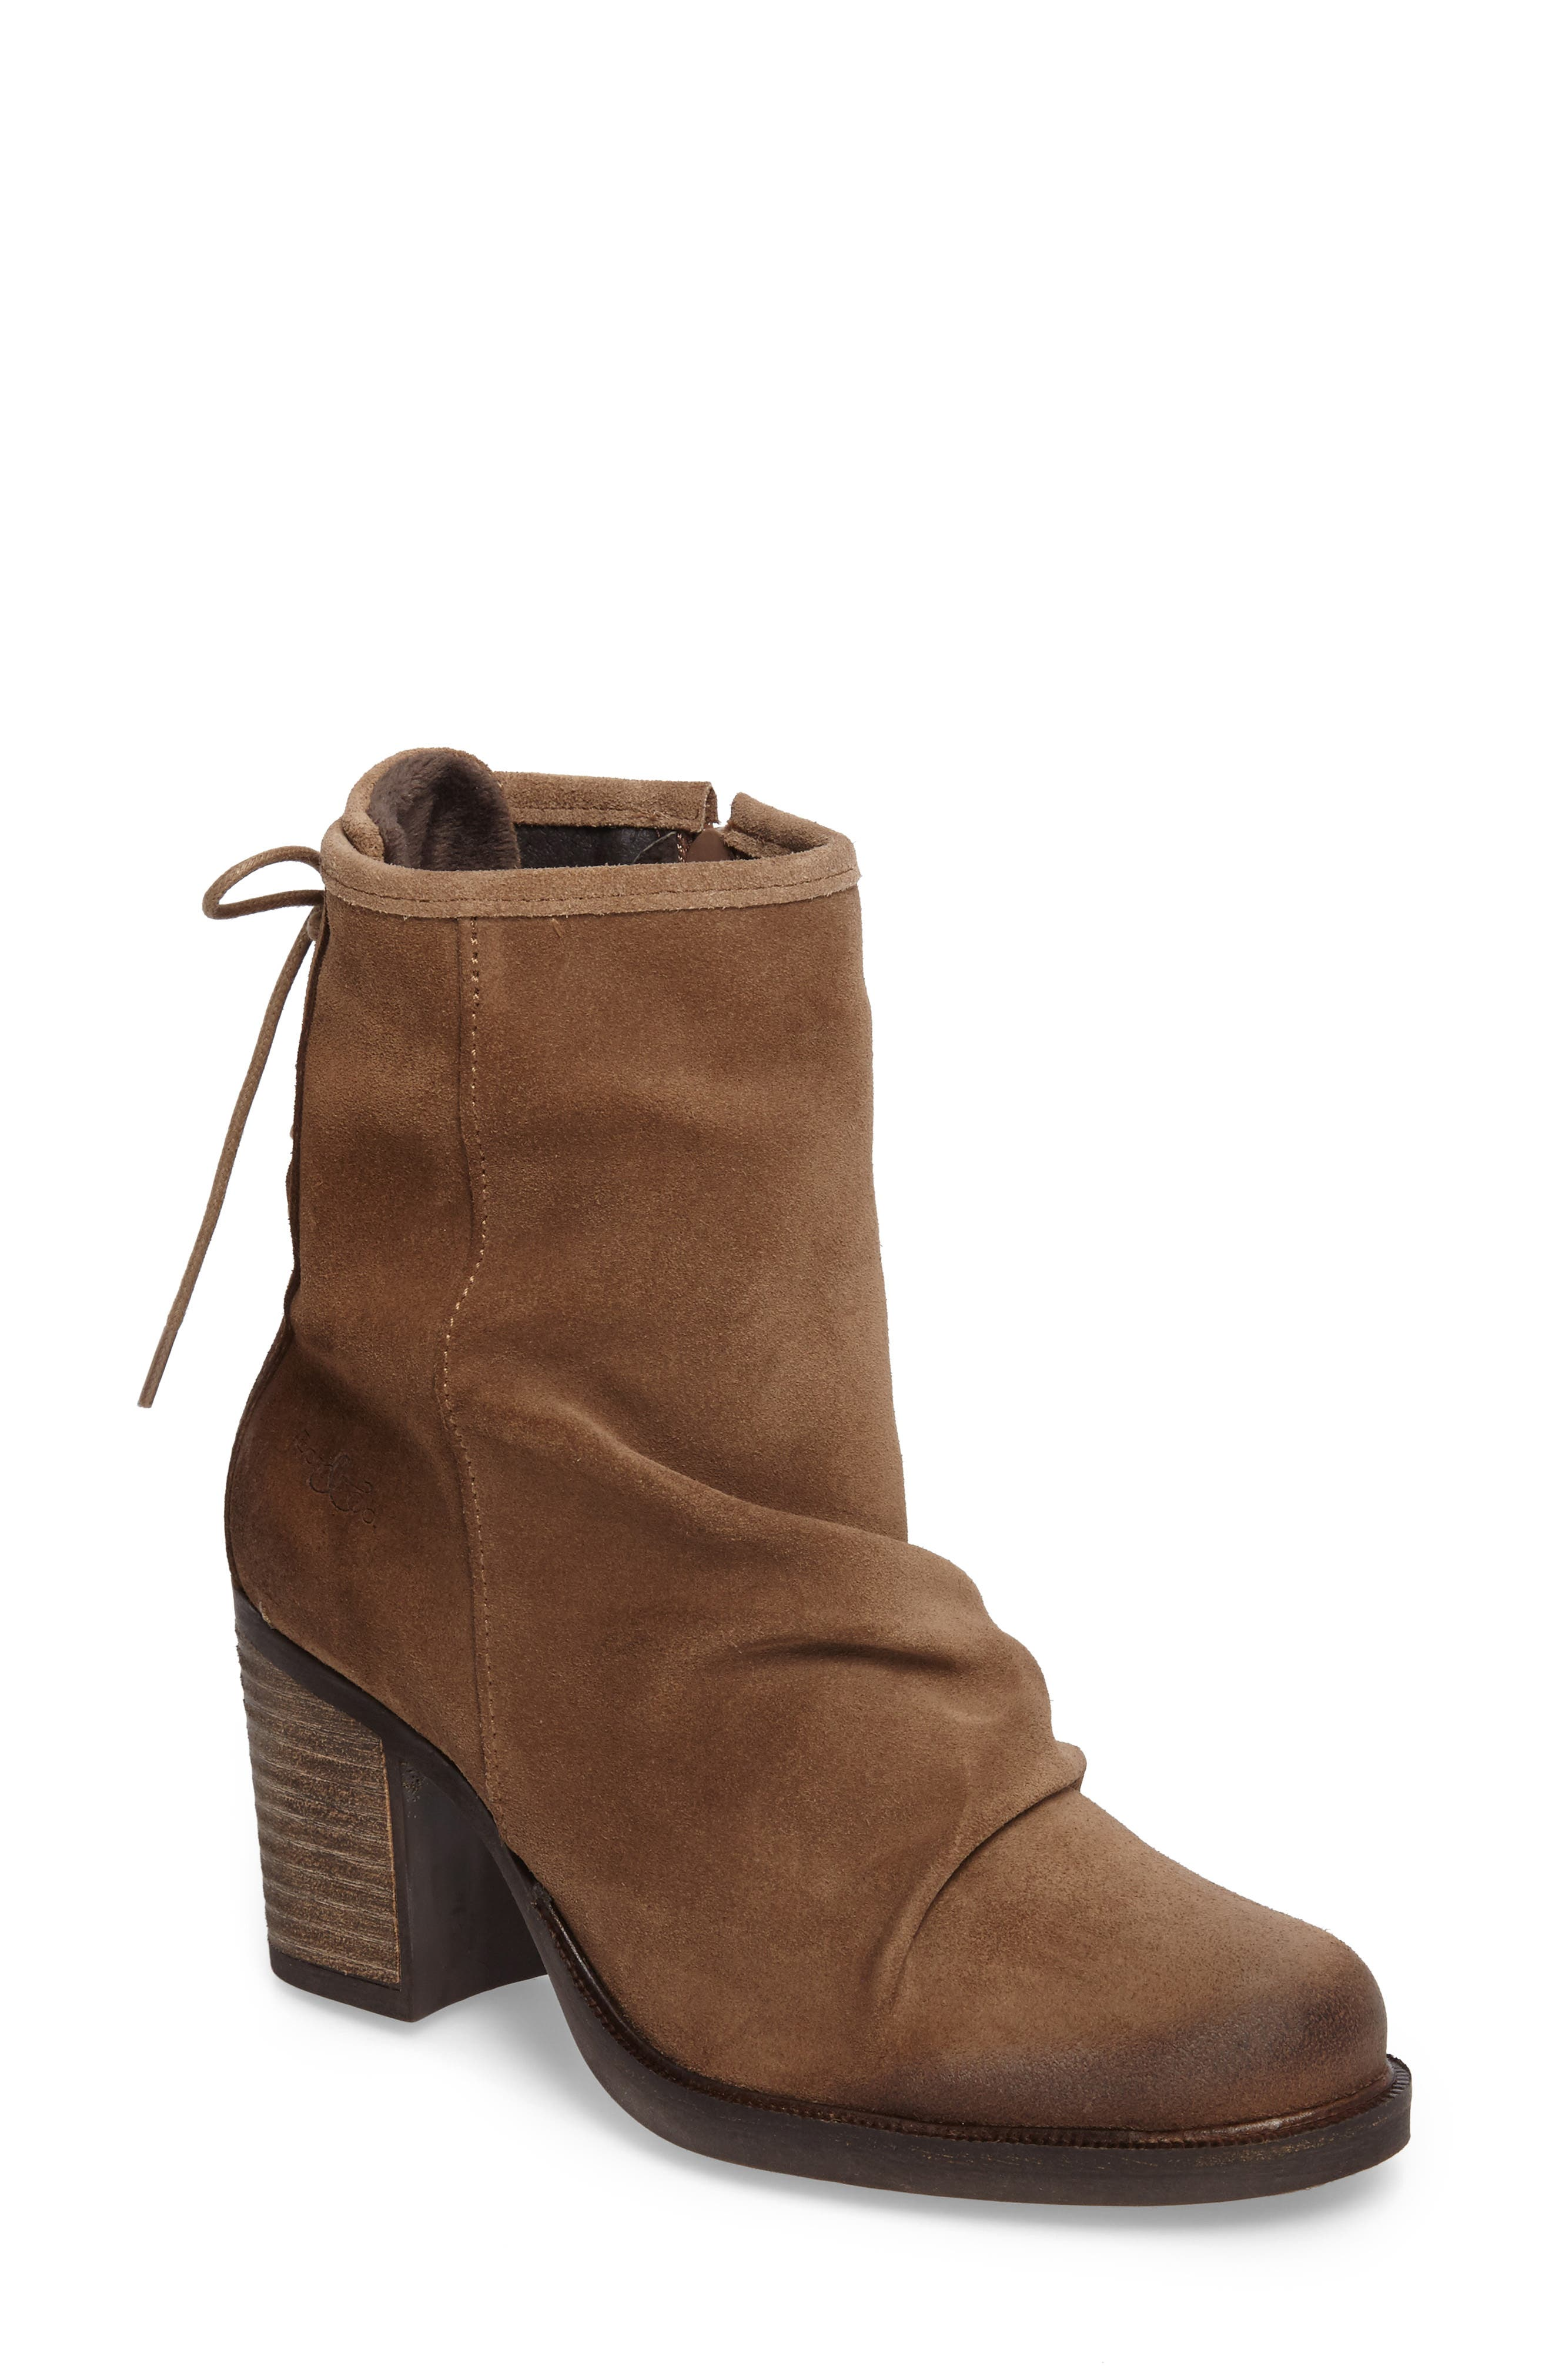 BOS. & CO. Barlow Waterproof Suede Bootie